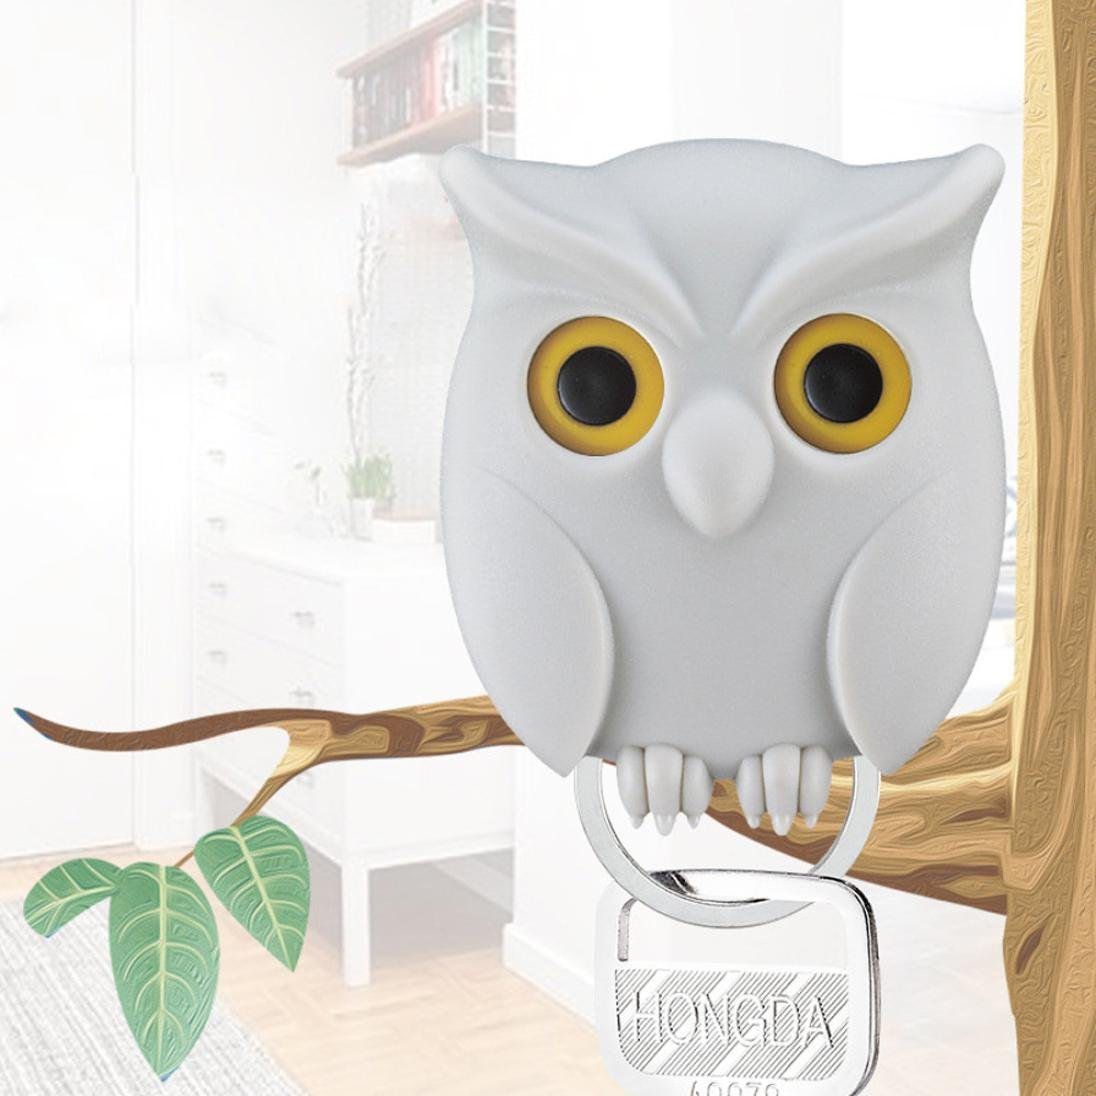 Highpot Night Owl Key Holder Wall Mounted Magnetic Key Holder Creative Home Decor (White)